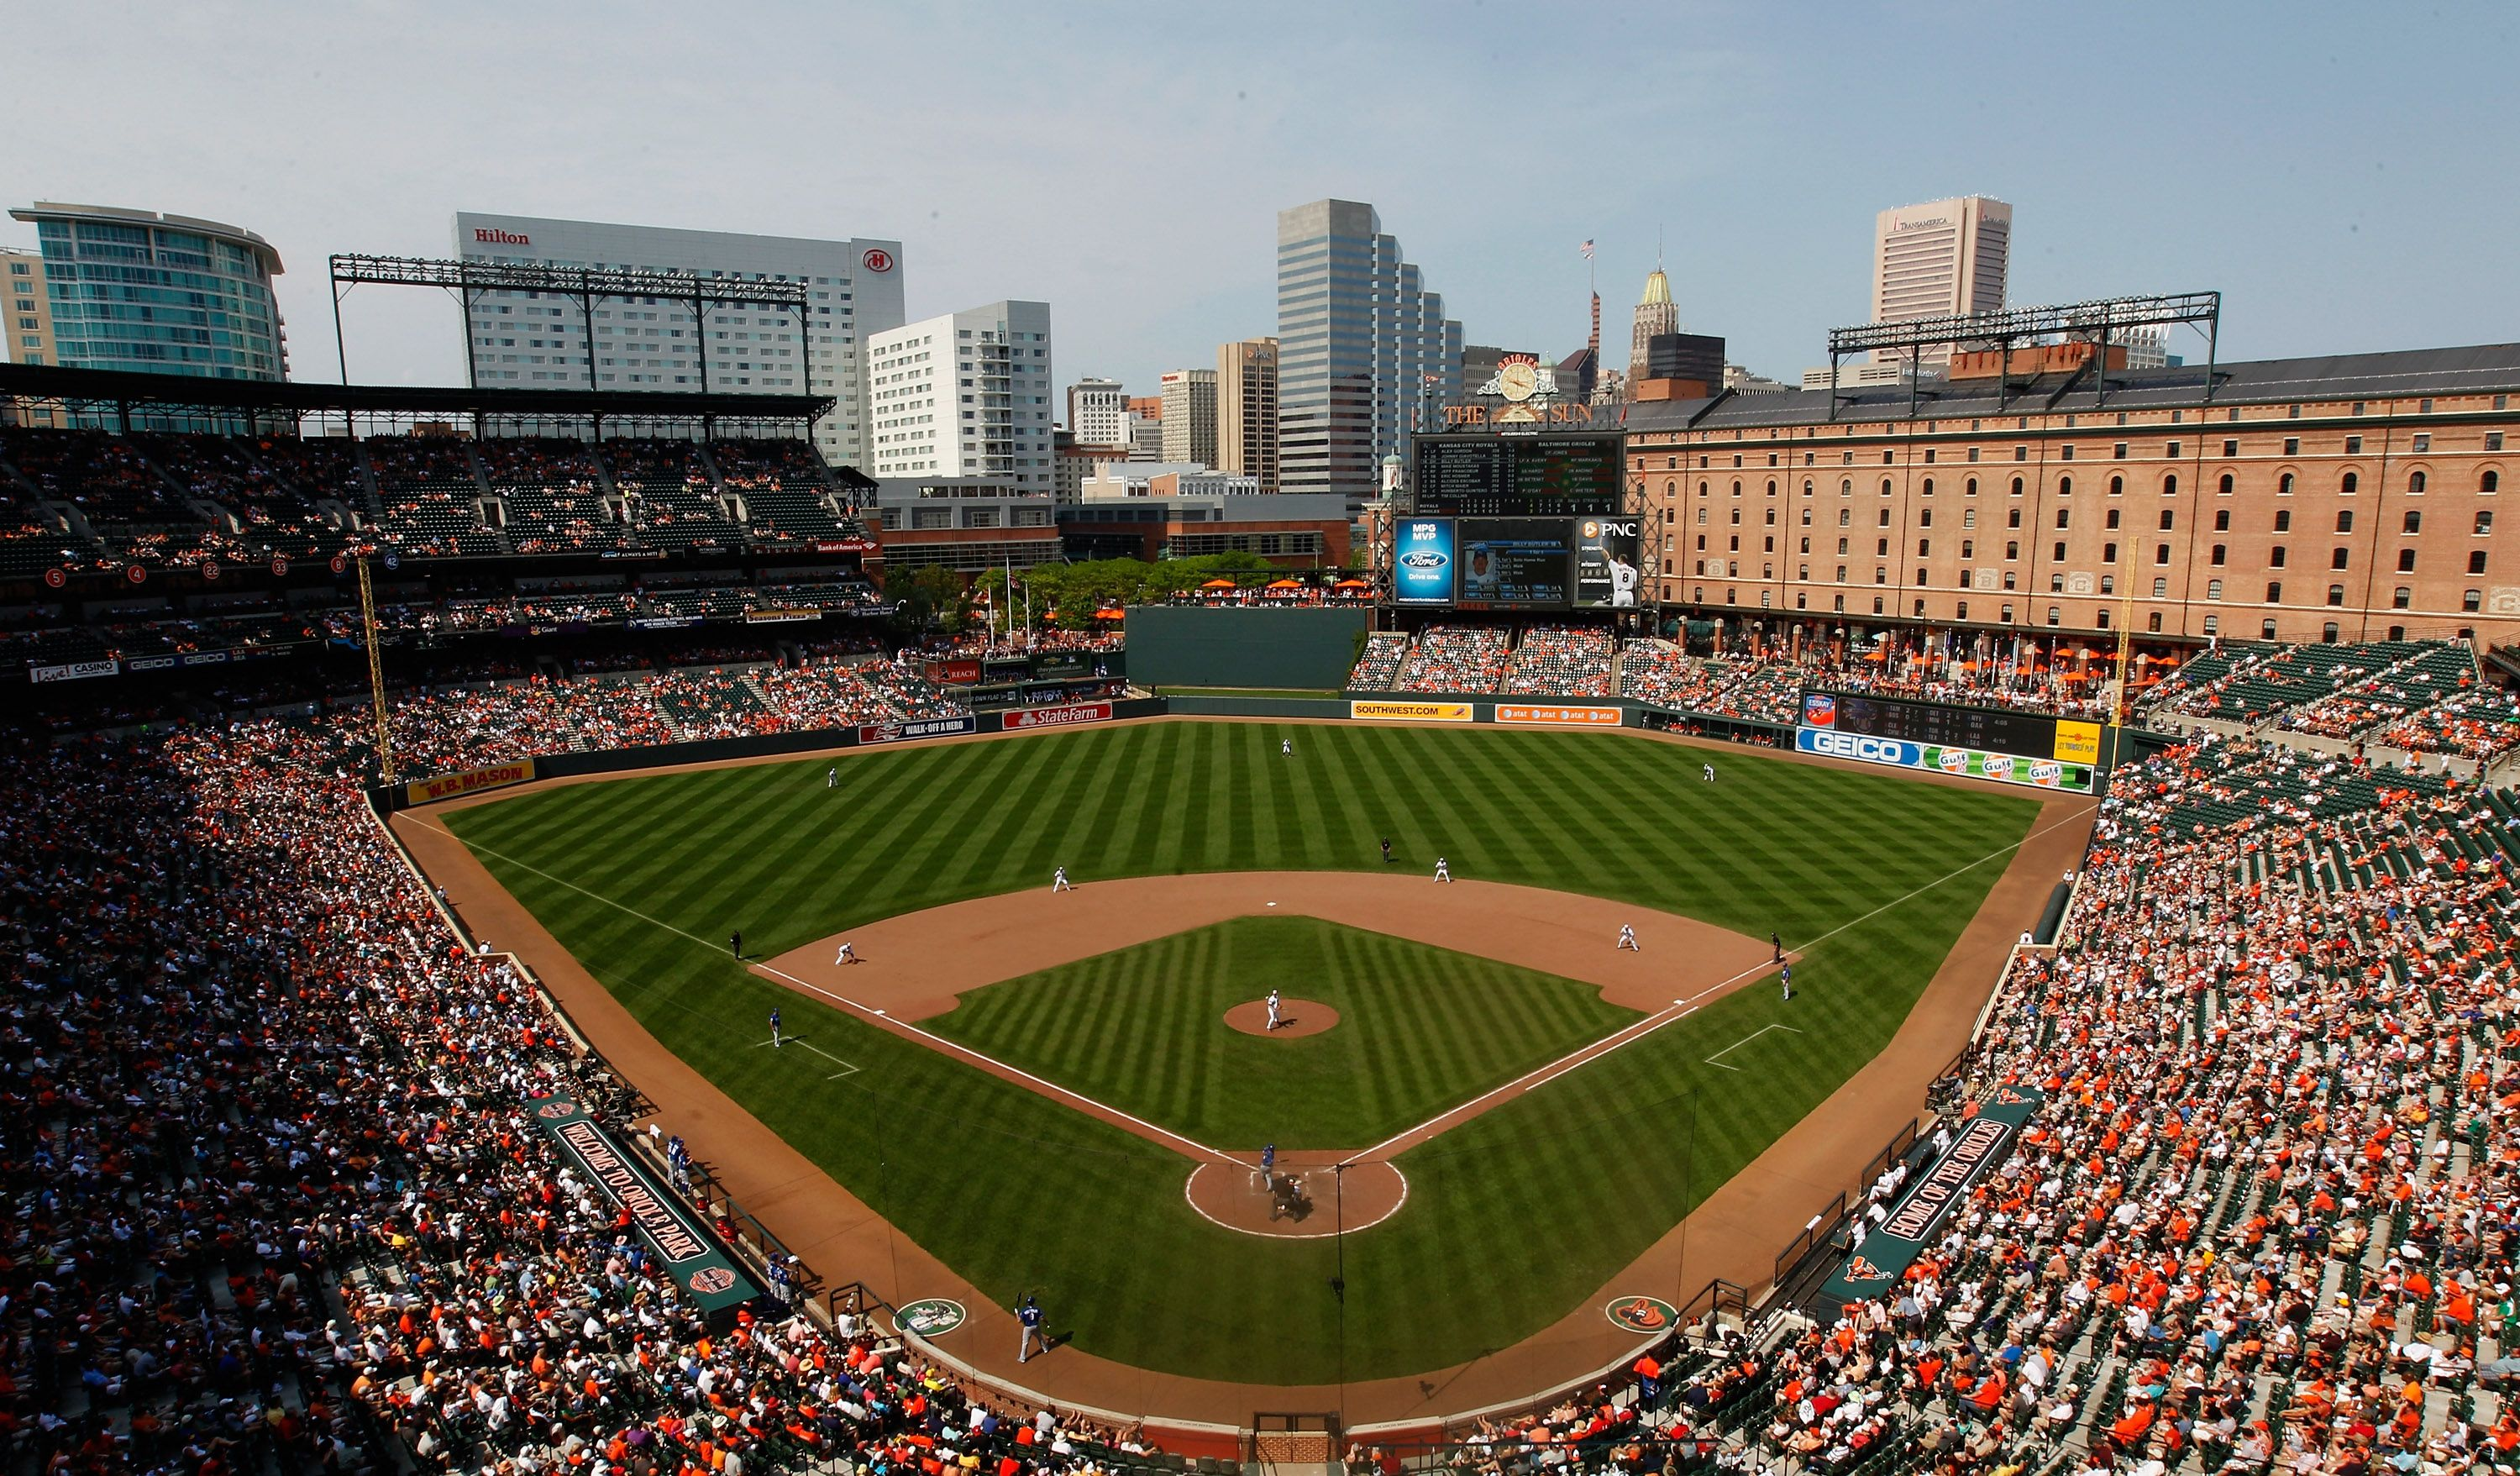 Oriole Park At Camden Yards Home To The Baltimore Orioles Camden Yards Baseball Park Baseball